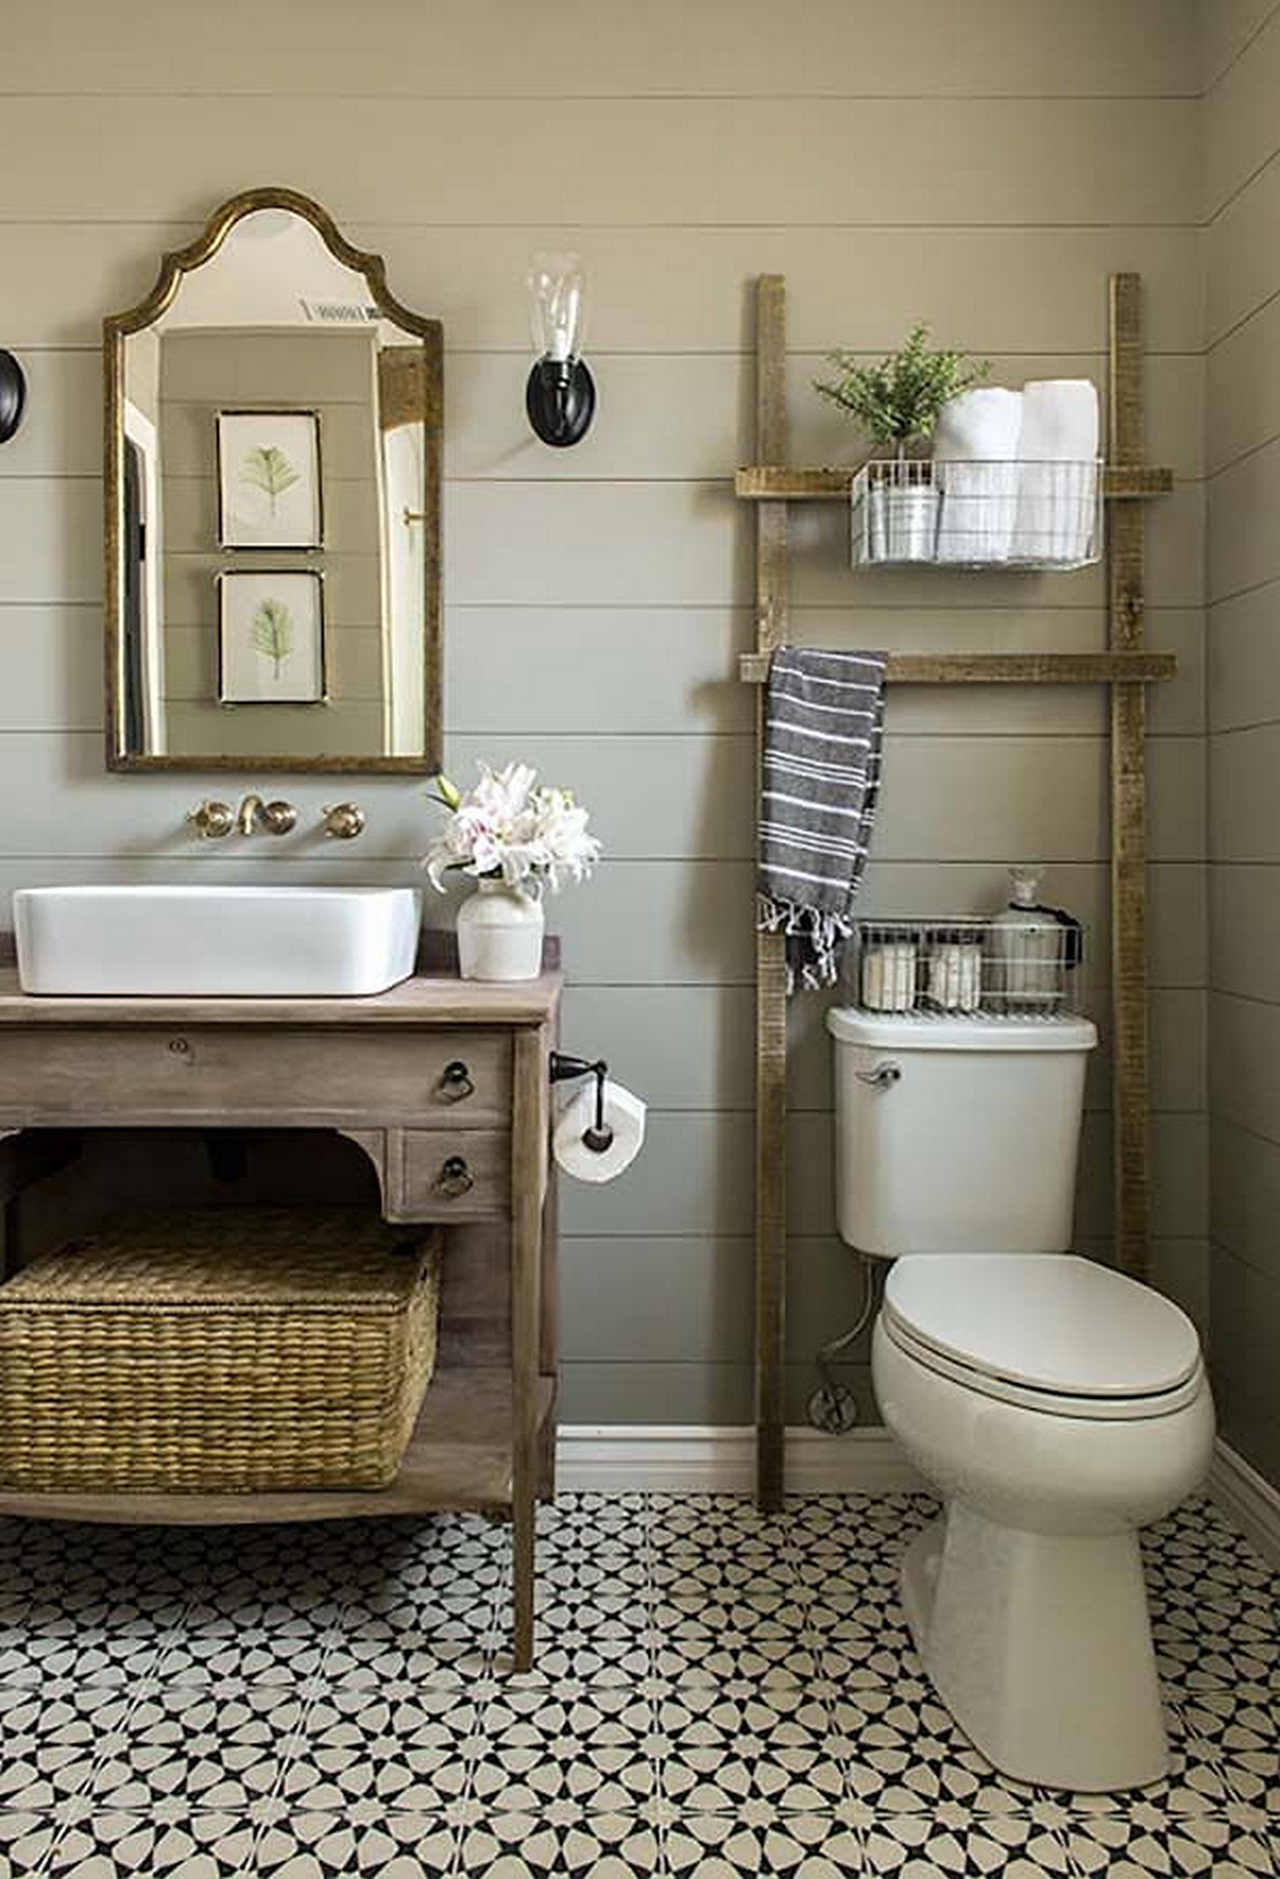 Cool bathroom decor 1. the golden blend of modern and rustic uwwnogp